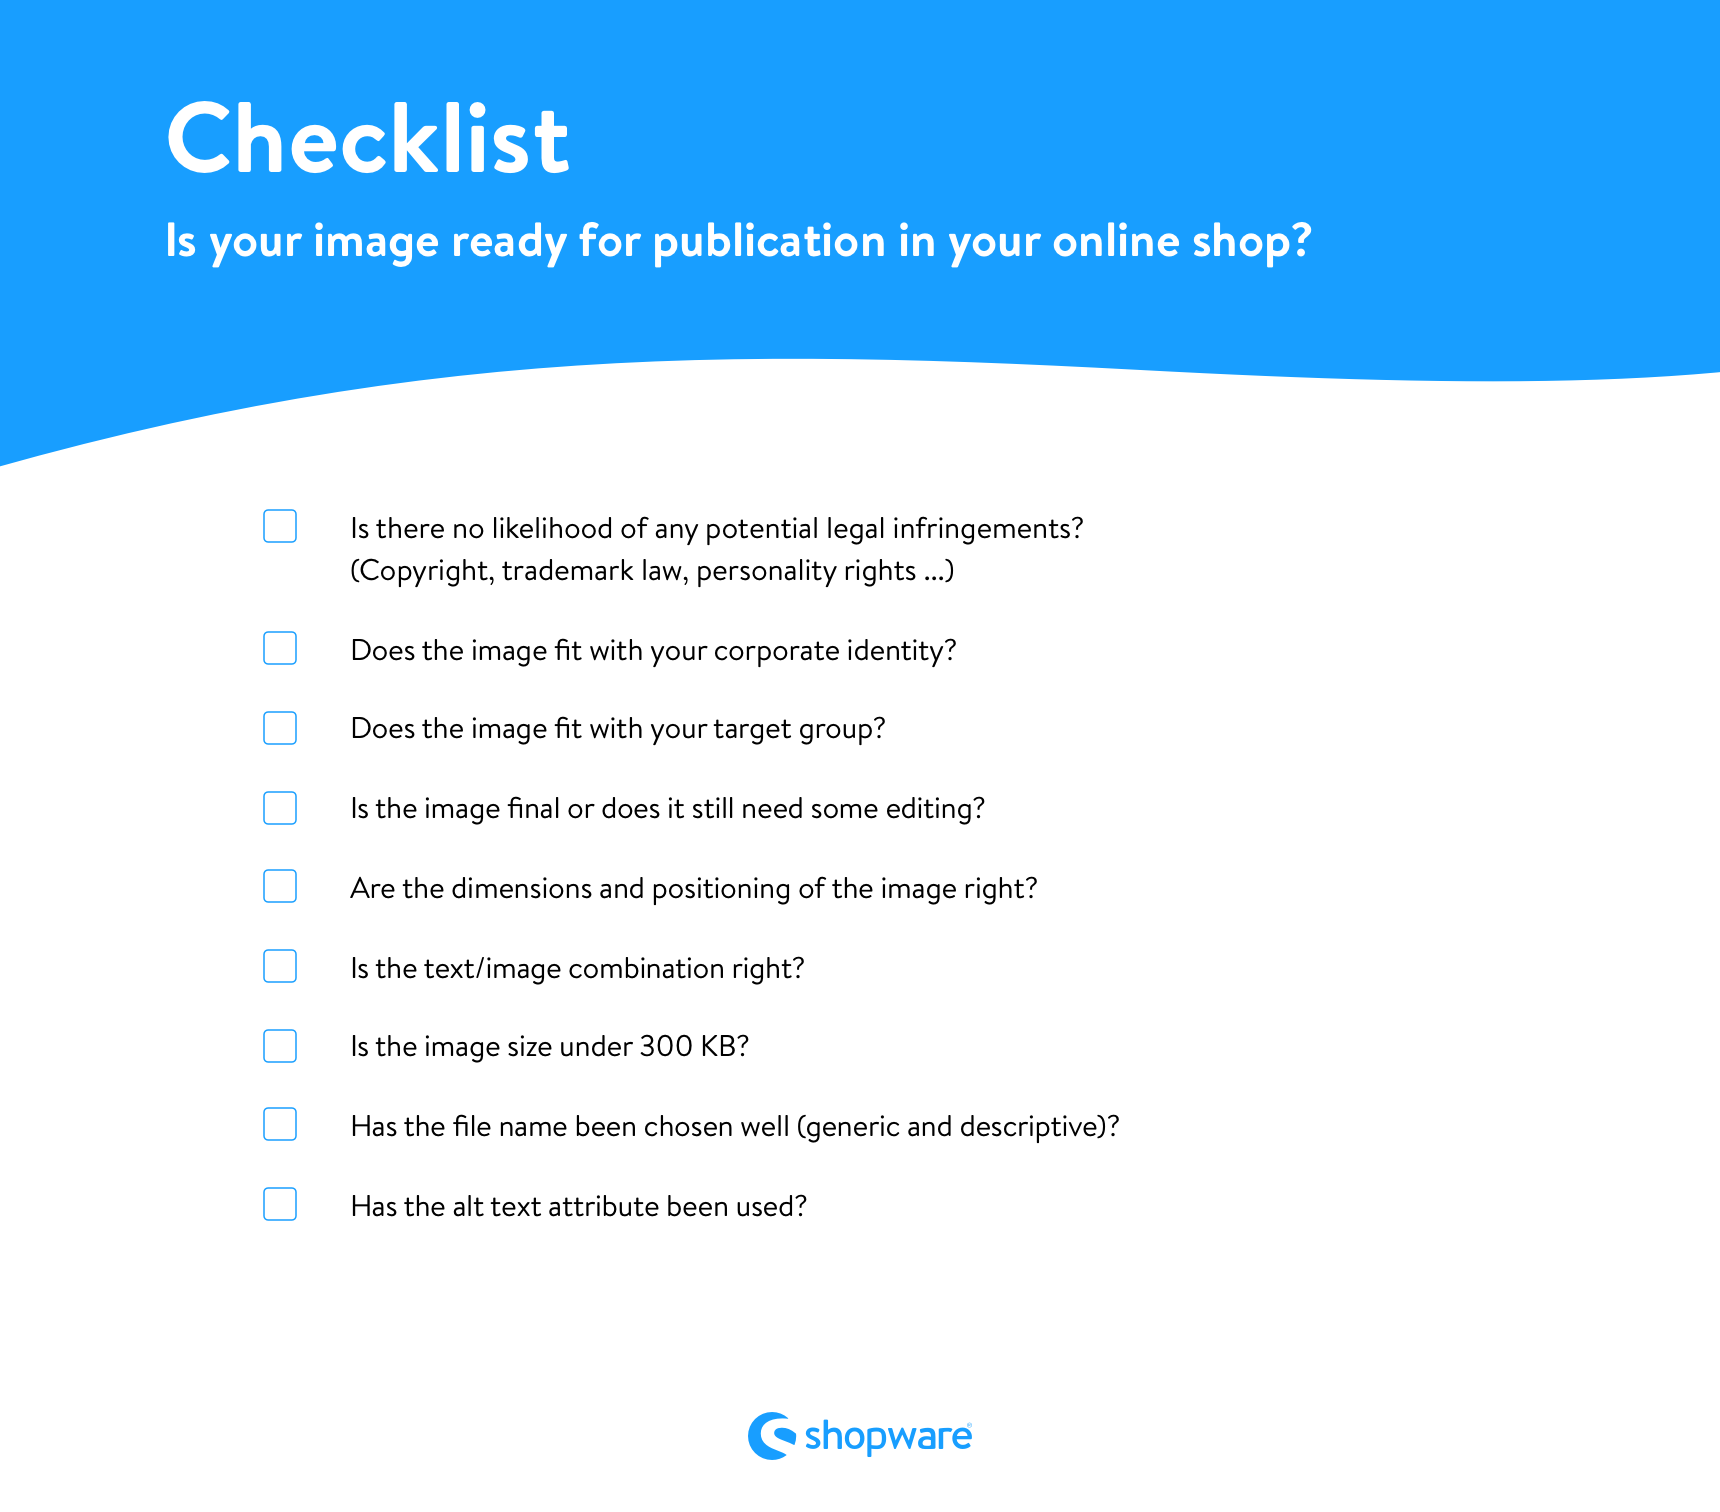 Checklist image readyness for publication